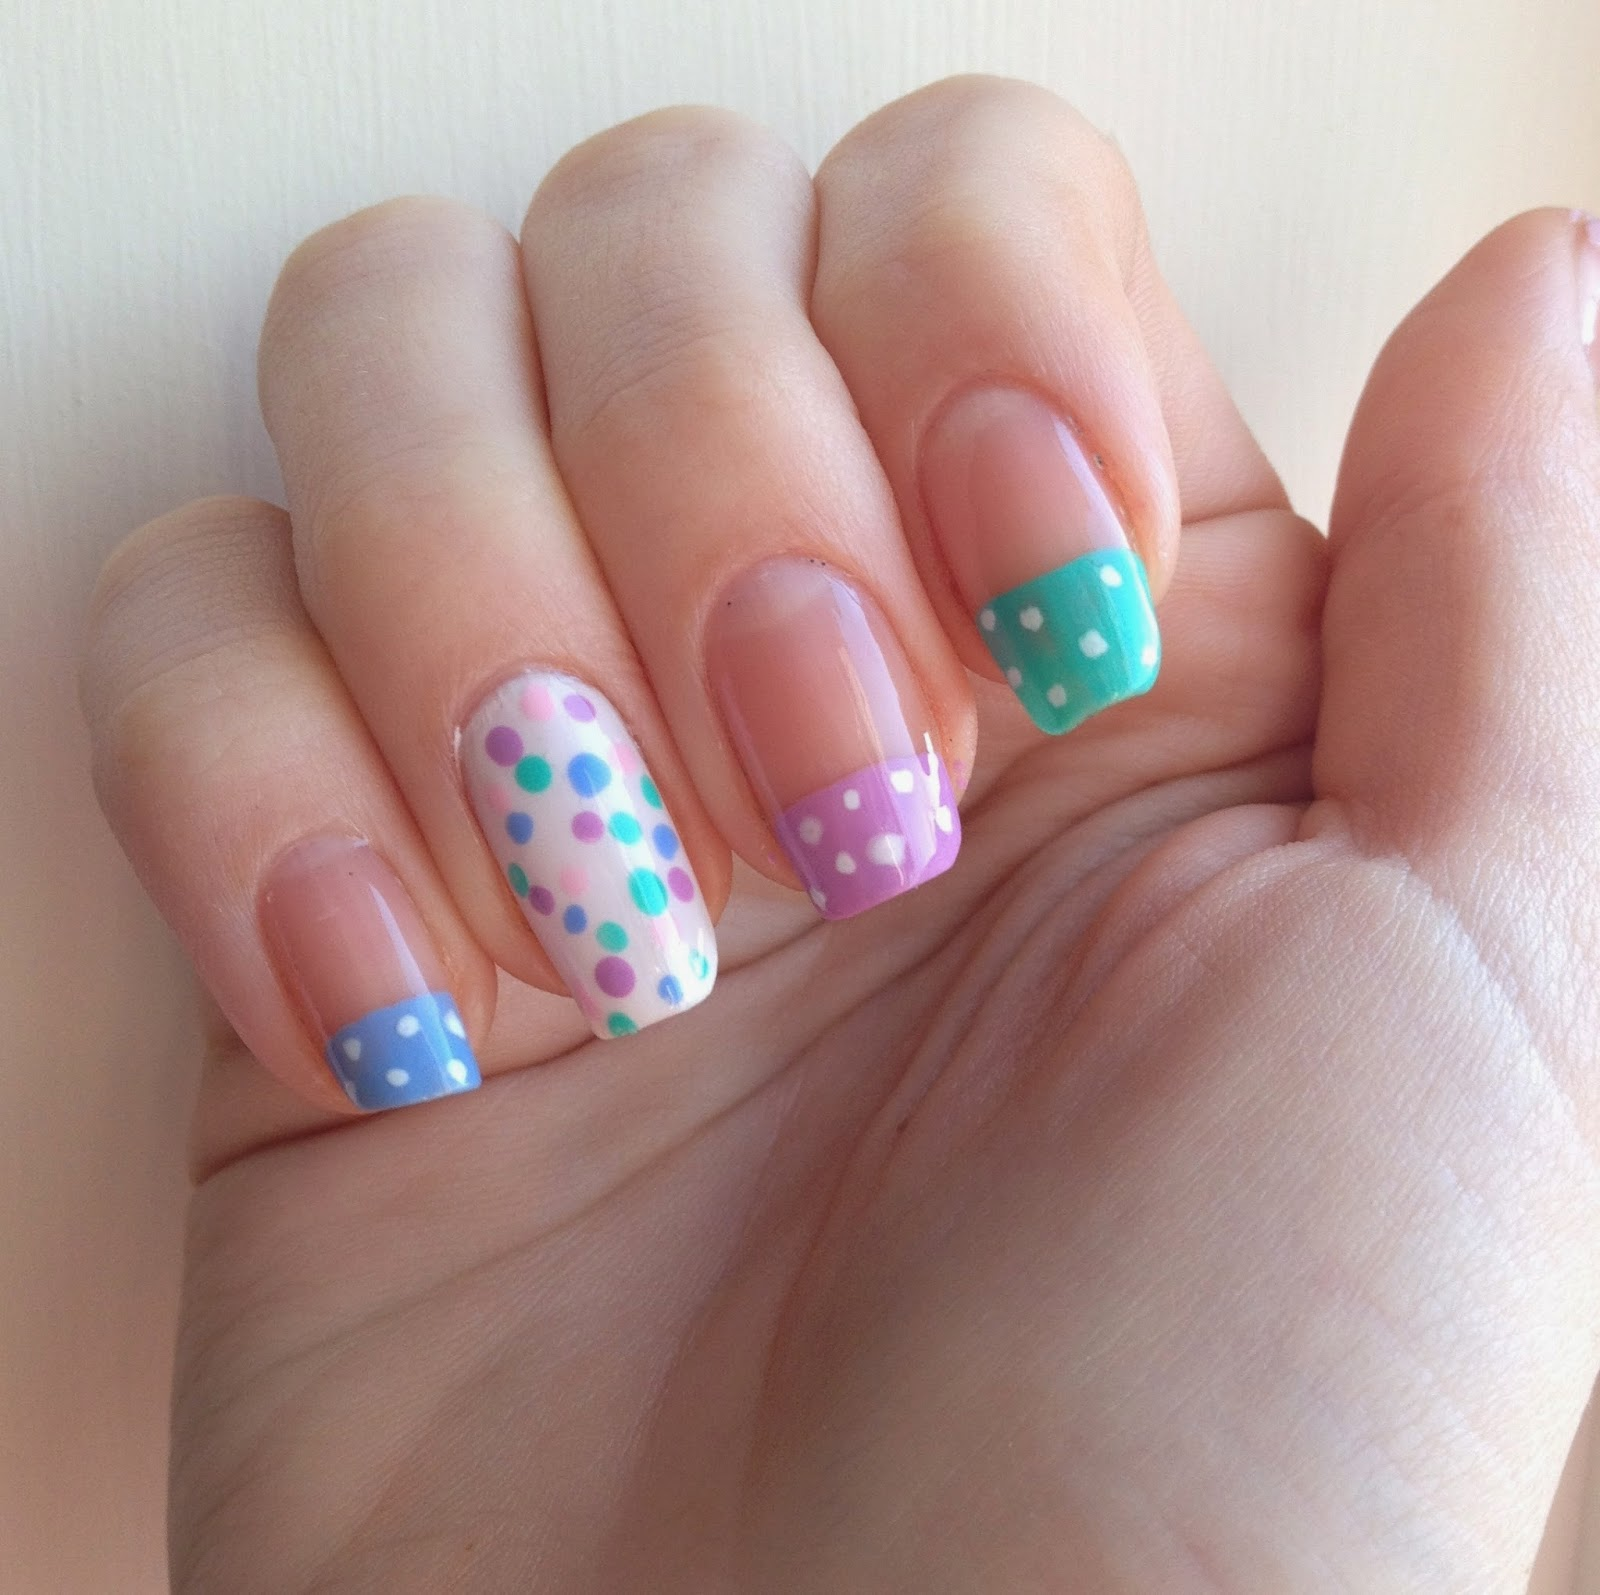 Nail Ideas For April: Photo -Jenn- Ic: Easter Nail Designs